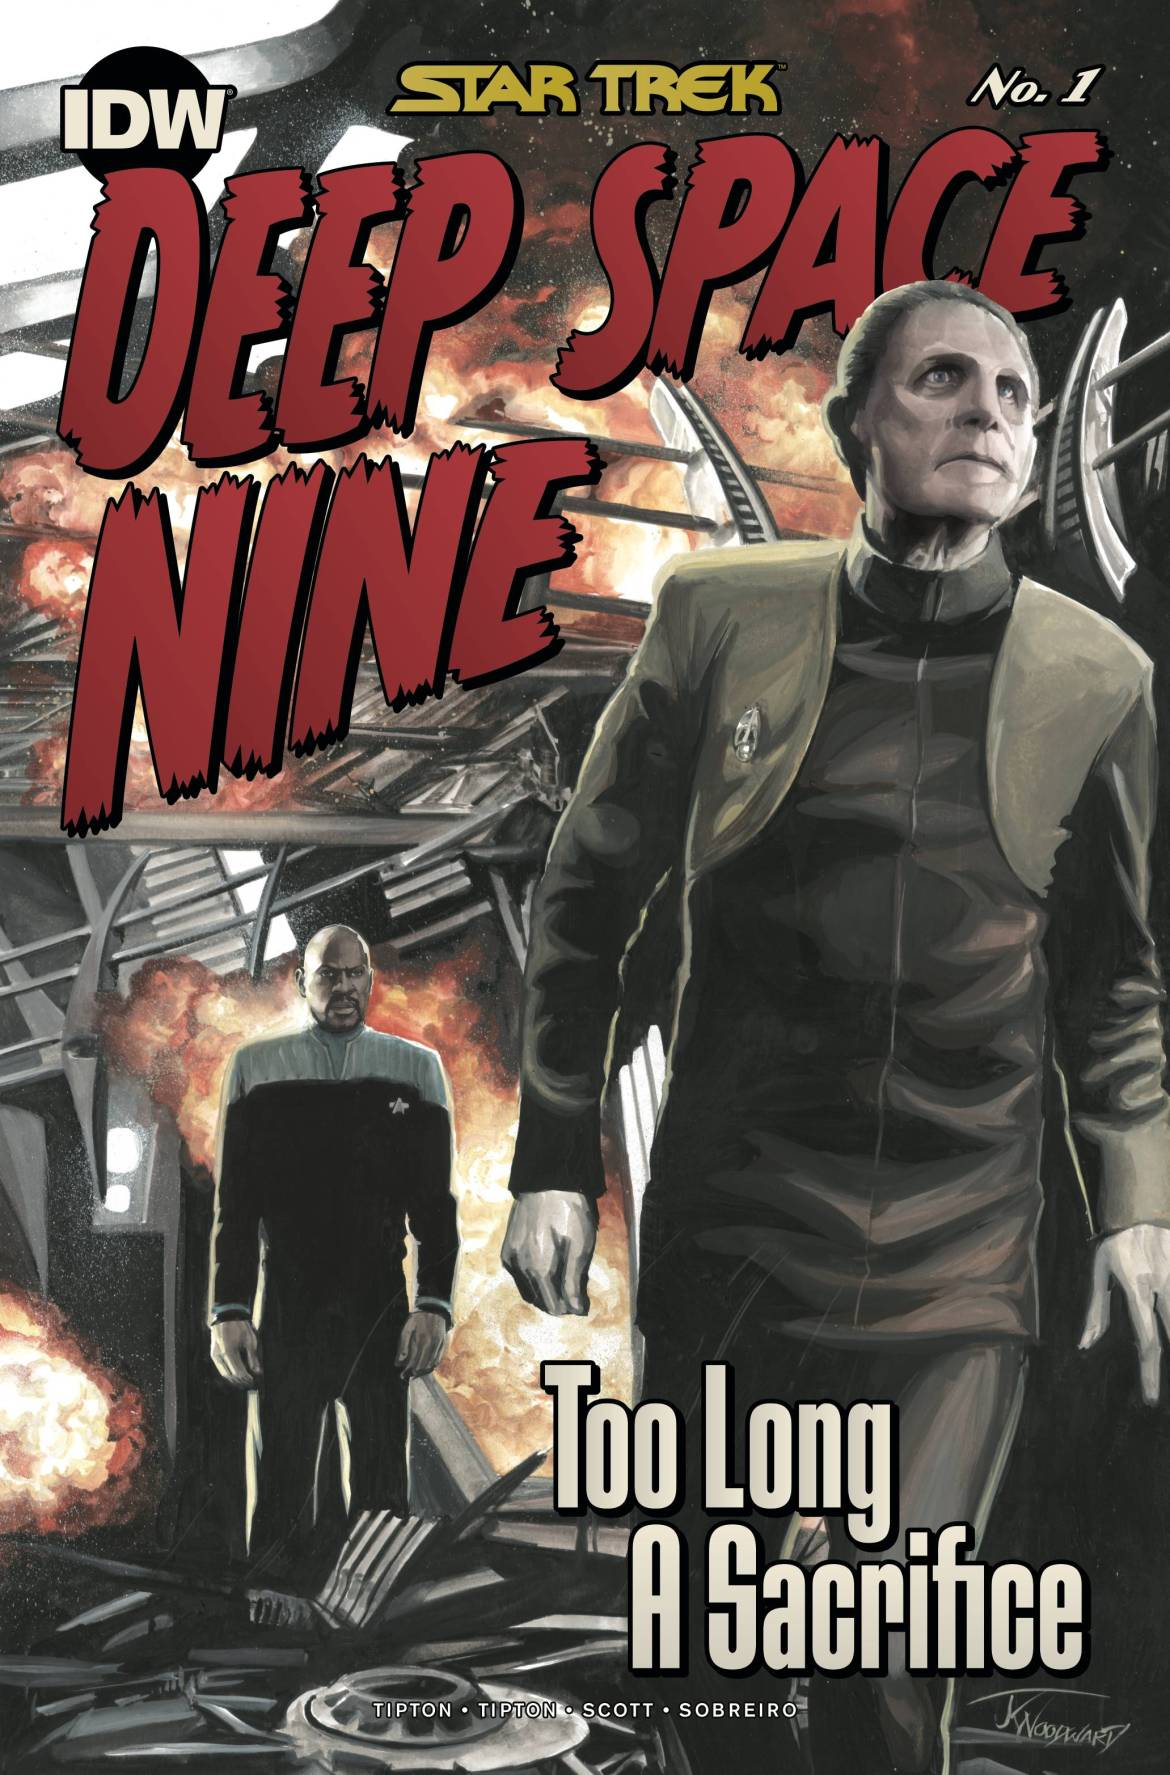 787831_star-trek-ds9-too-long-a-sacrifice-1-10-copy-cover-woodward ComicList: IDW Publishing New Releases for 07/15/2020